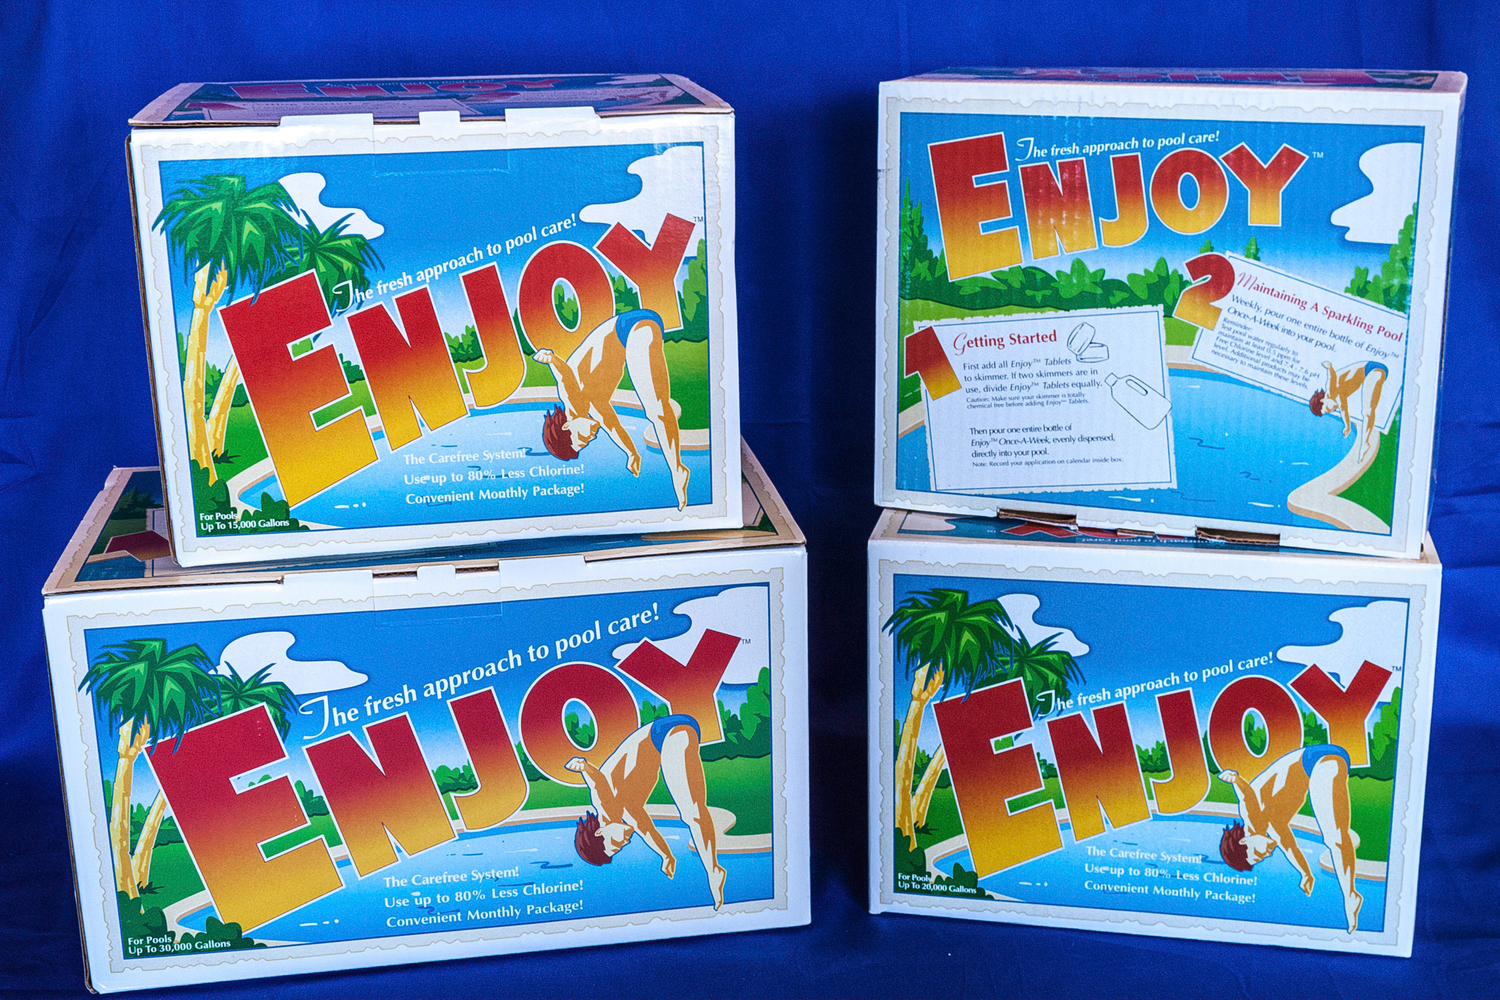 ENJOY! comes in one month supplies kits for 10,000, 15,000, 20,000 & 30,000 gallon pools.